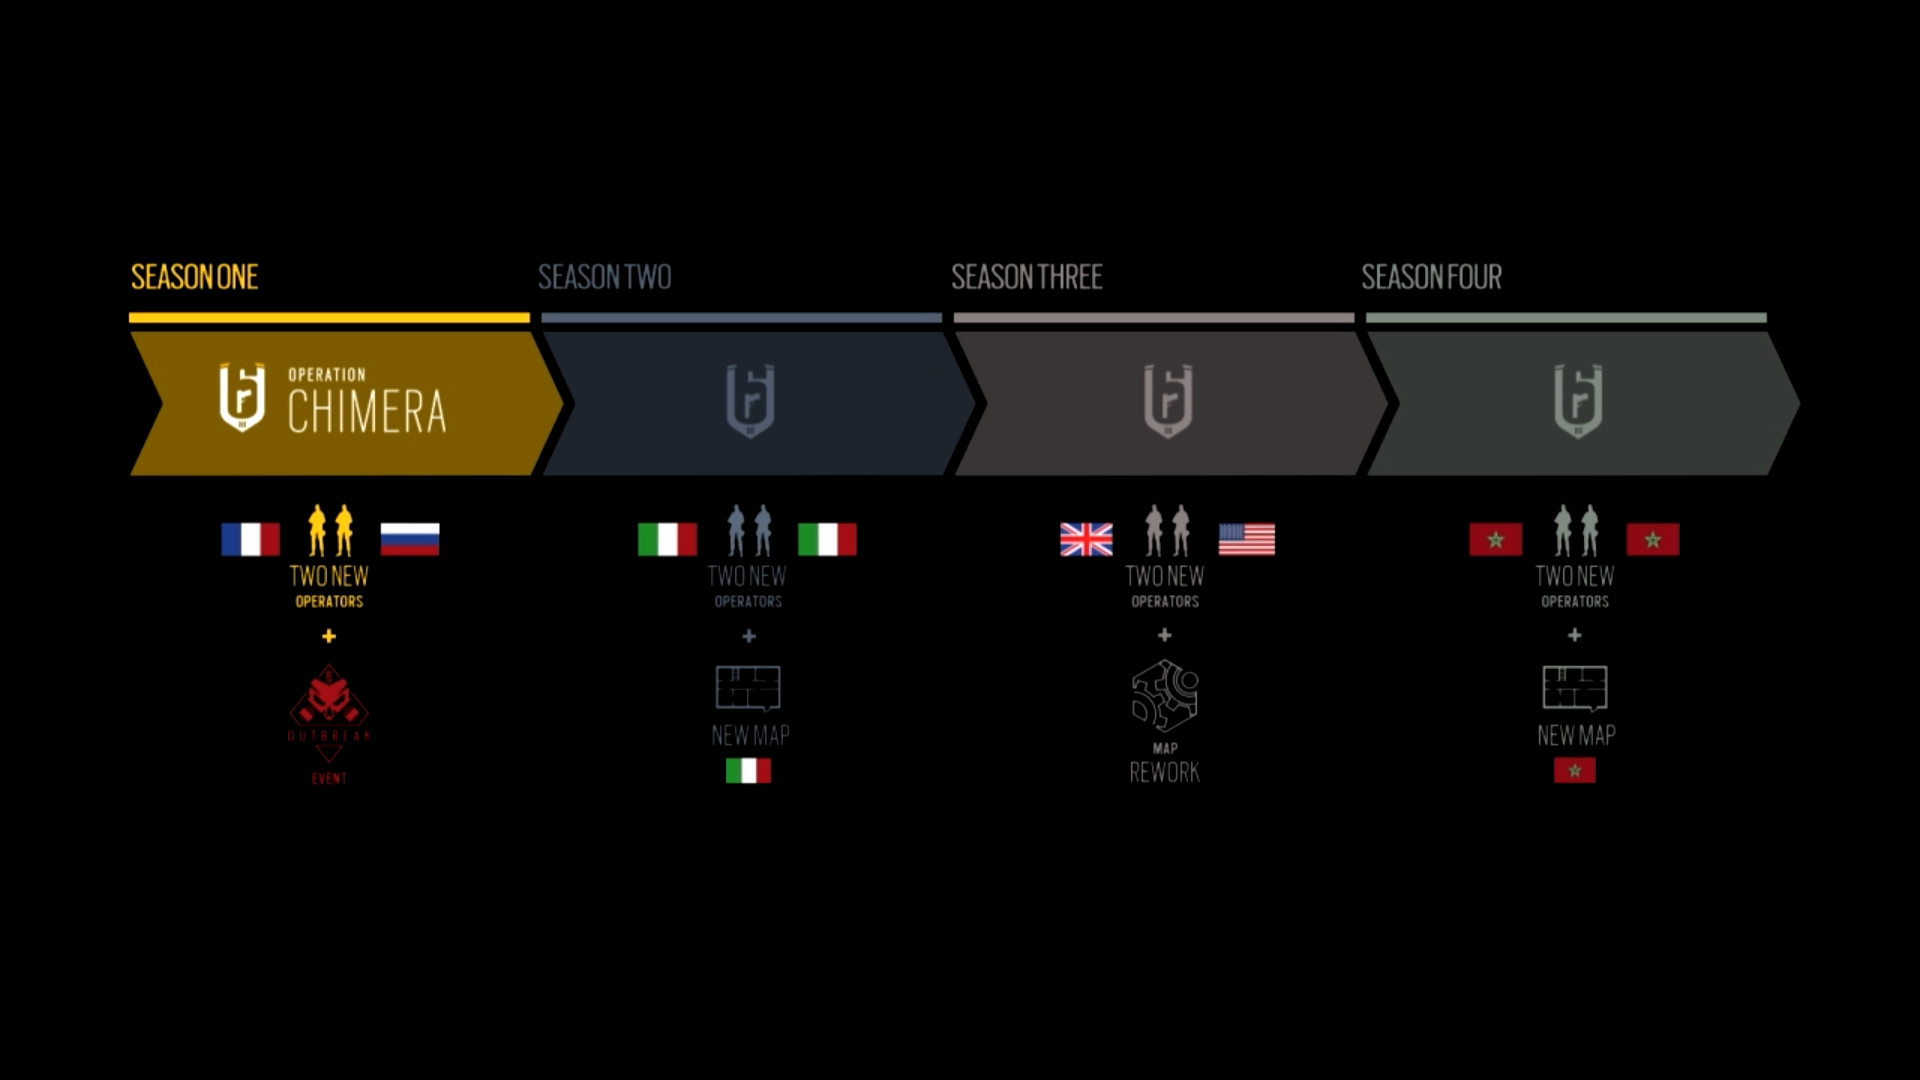 Rainbow Six Siege Year 3 content detailed, new co-op mode